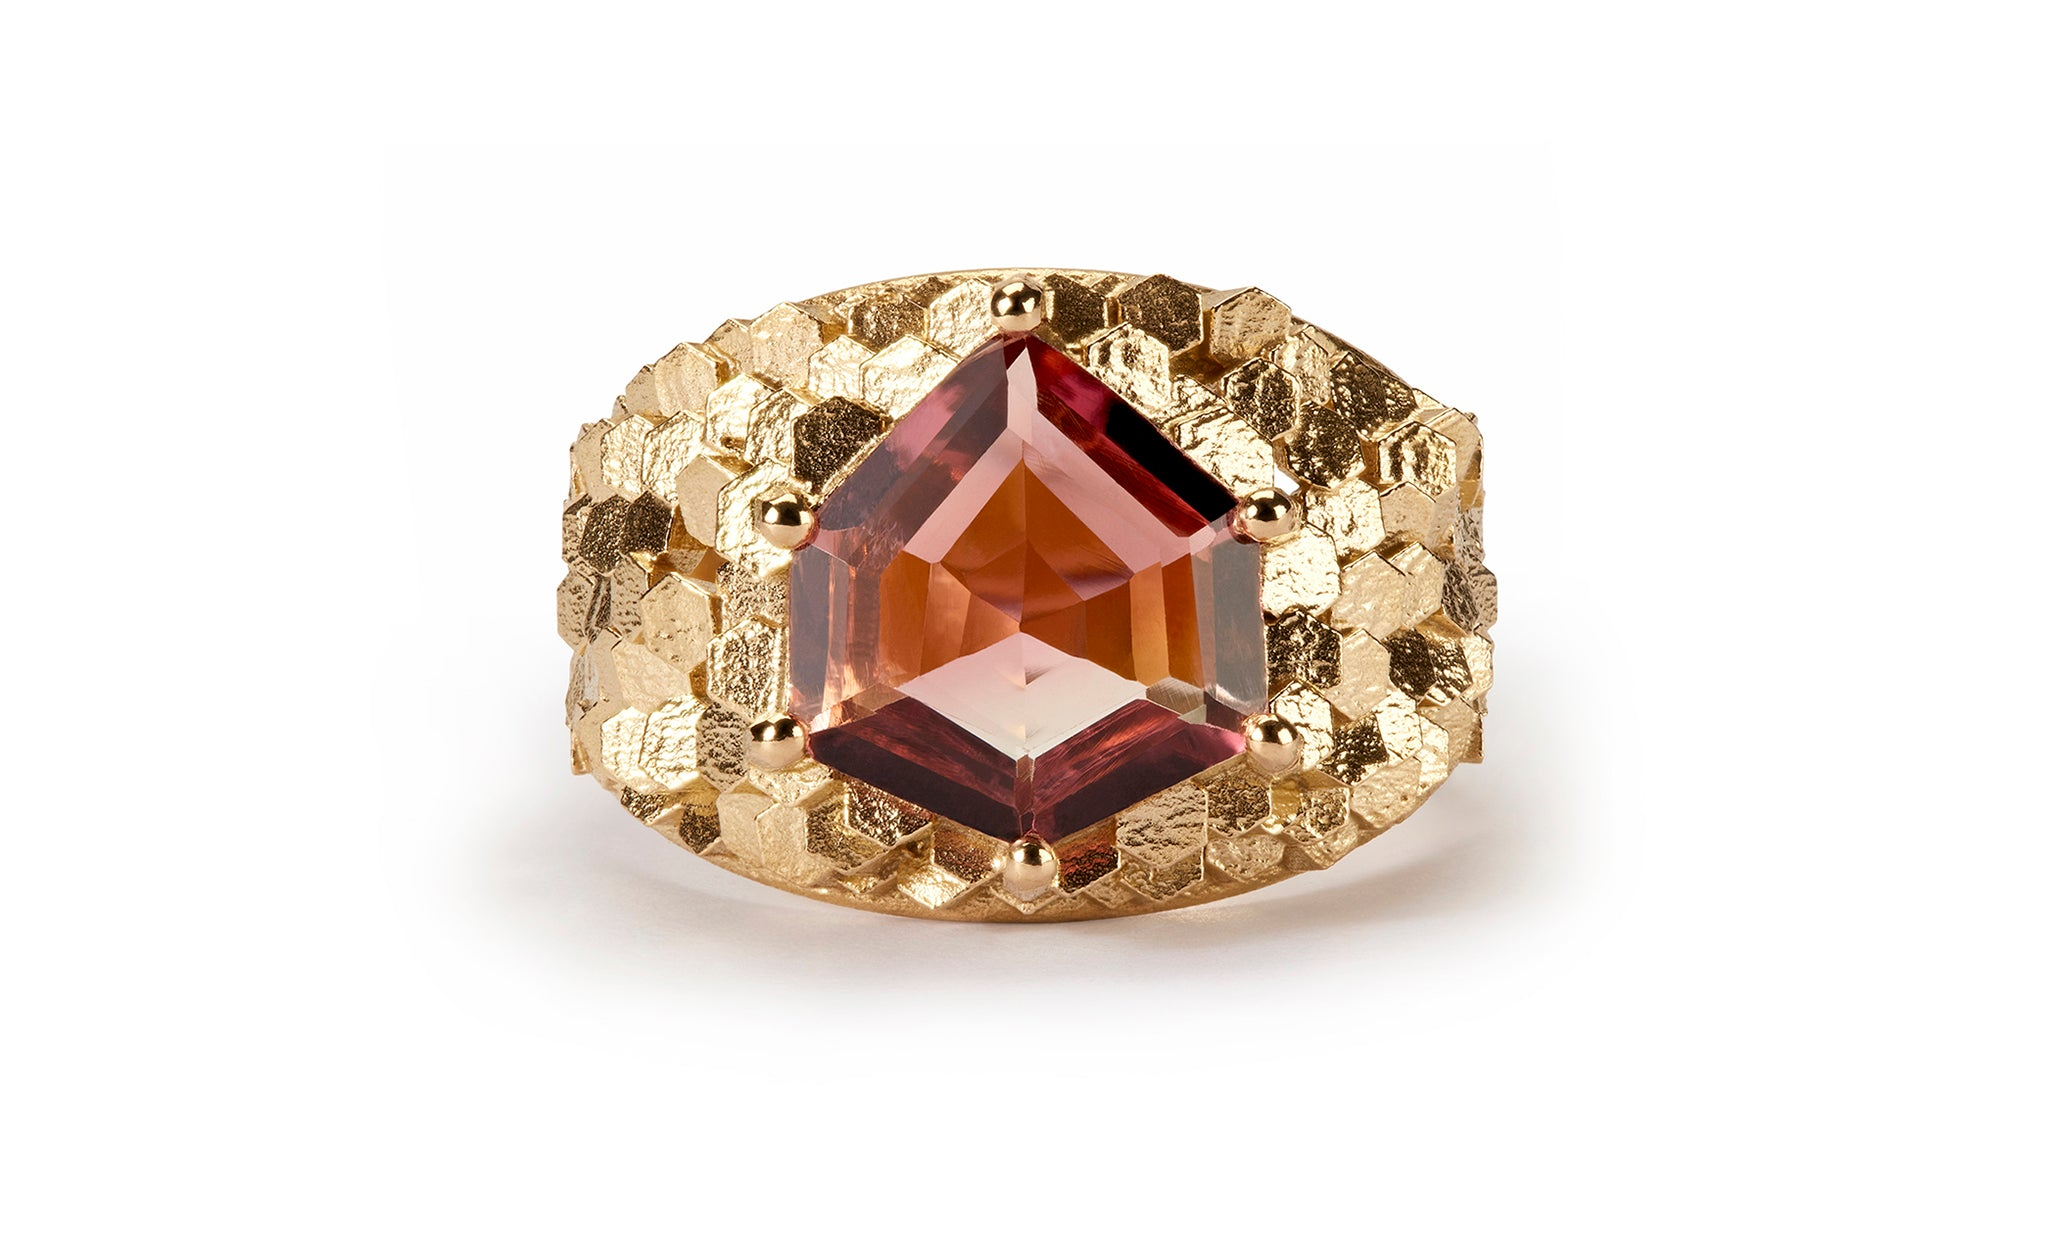 Tapered Chaos Hex ring with Geocut Pink Tourmaline